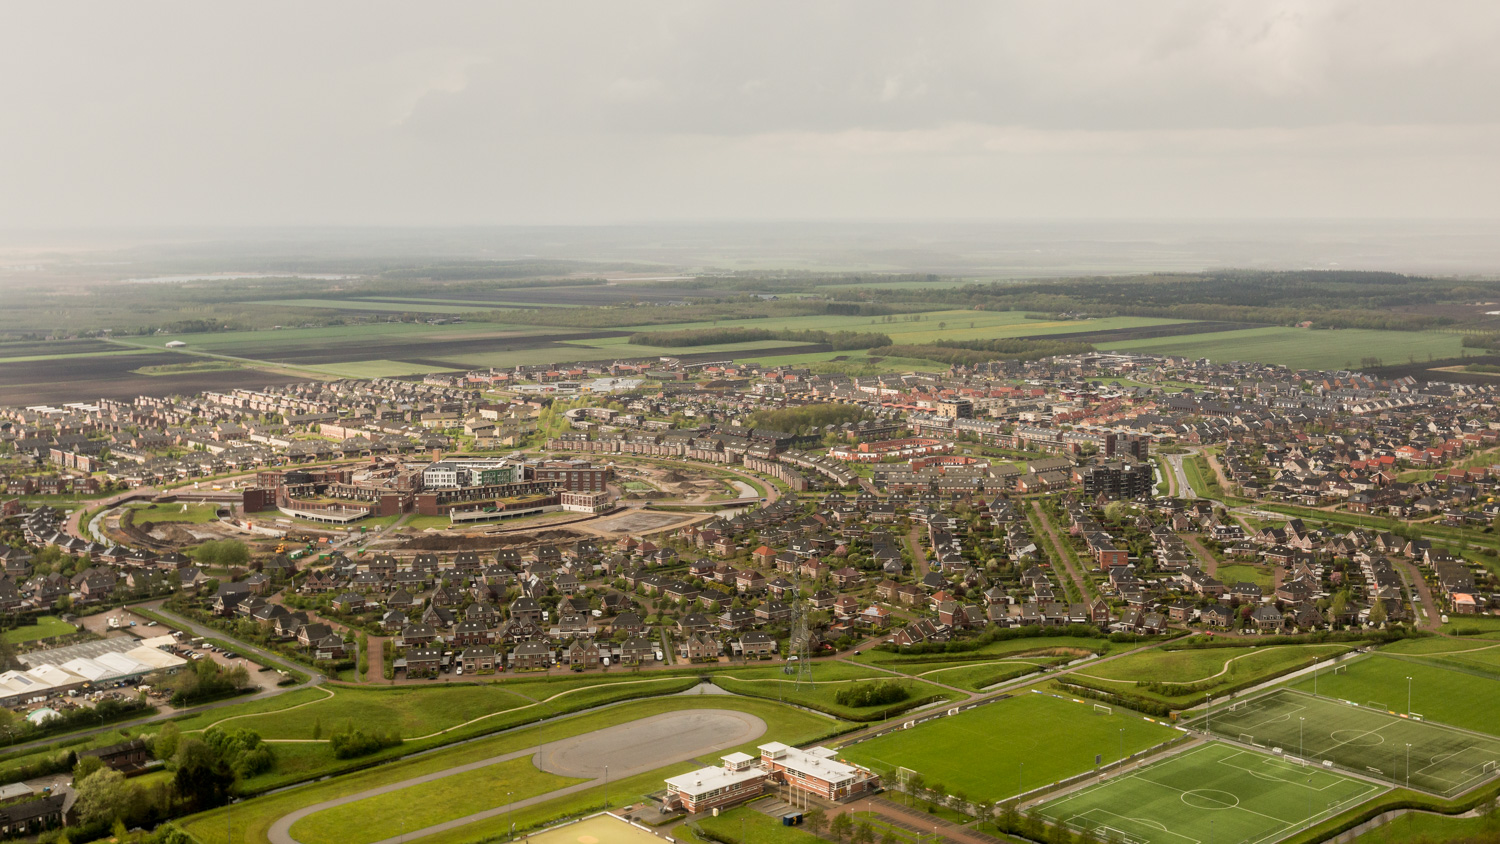 005 - Luchtfoto